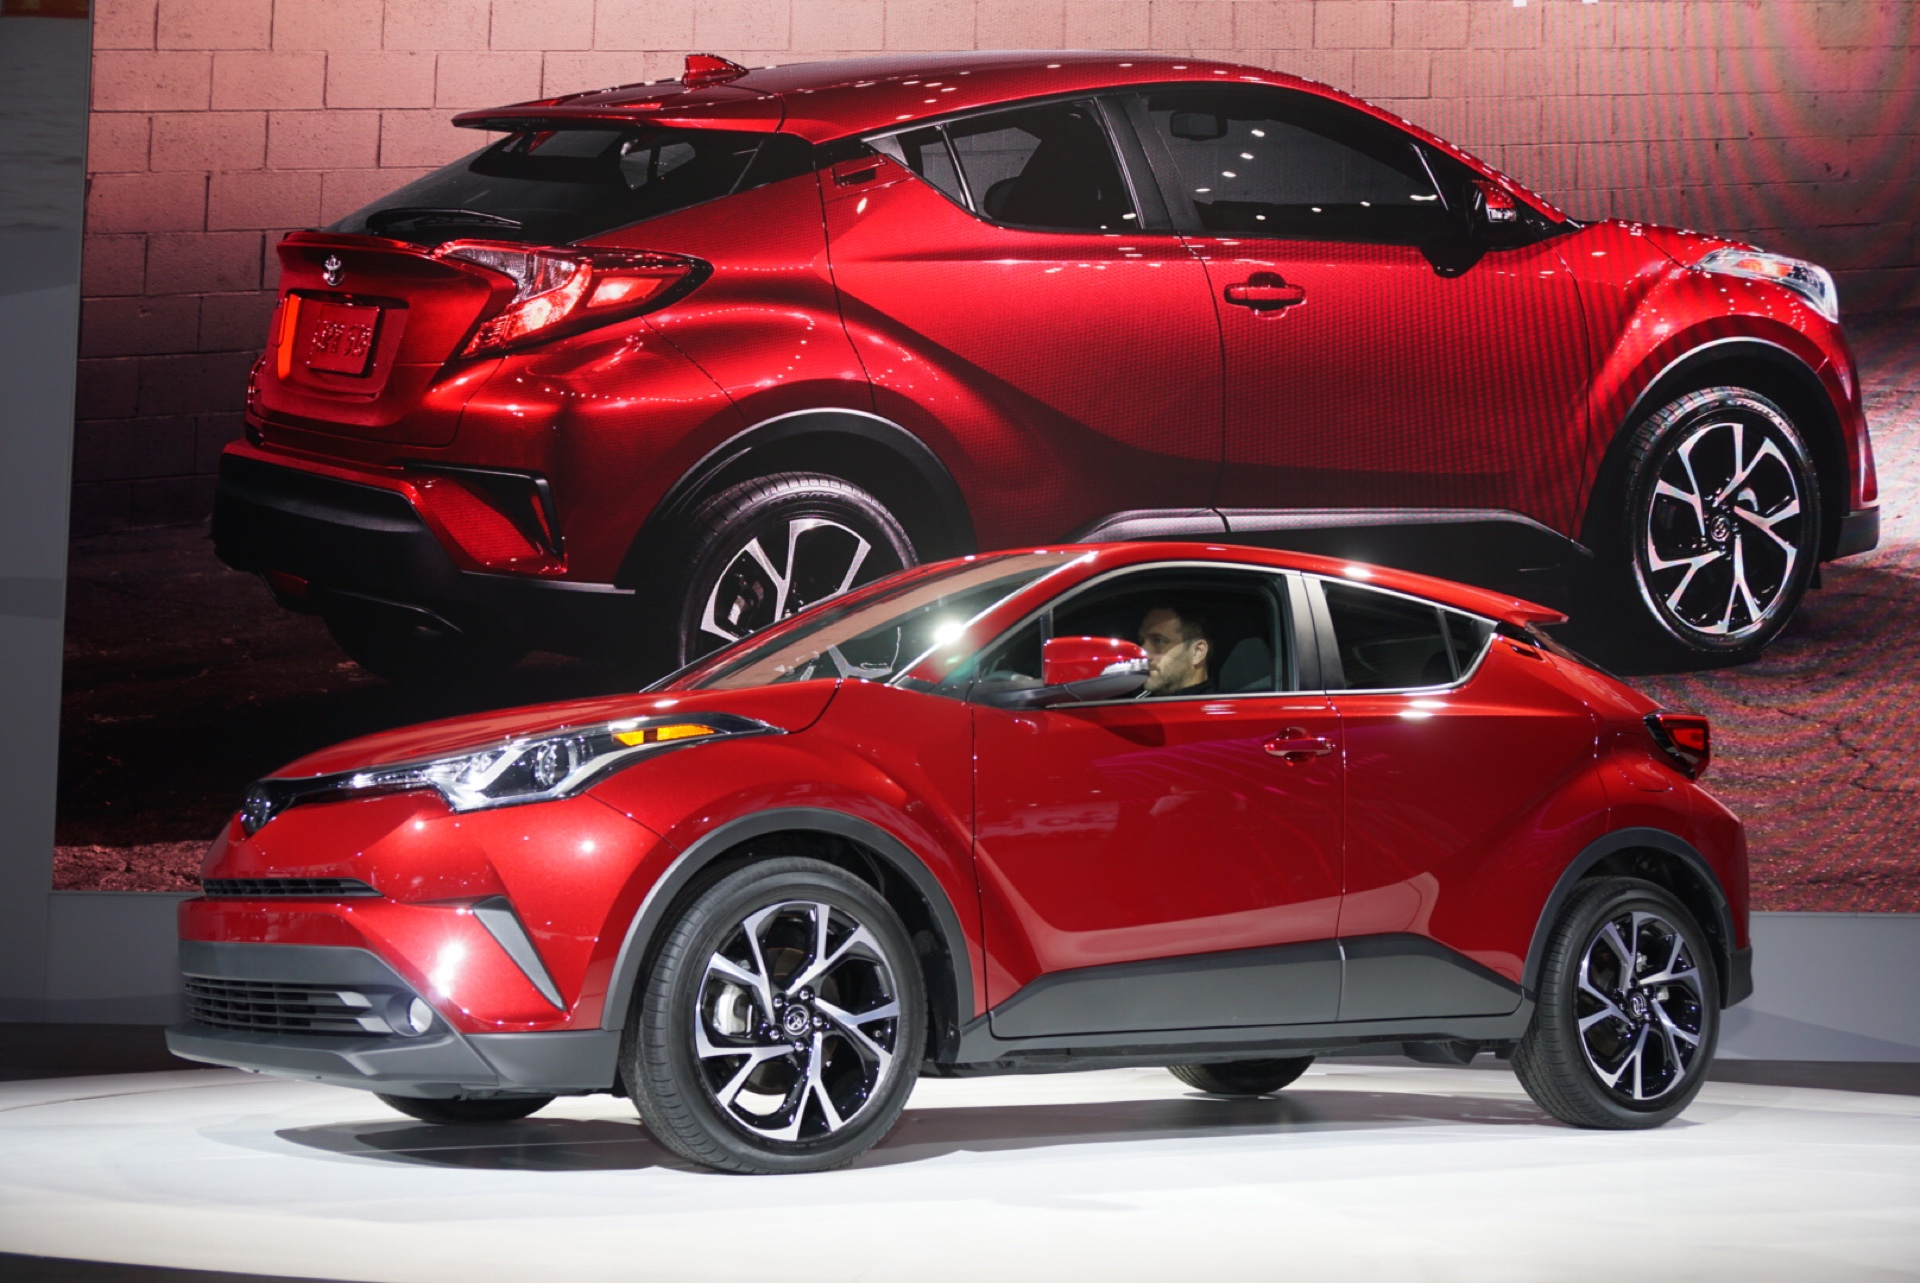 2018 toyota 2 door.  2018 no awd for 2018 toyota chr subcompact crossover for toyota 2 door green car reports